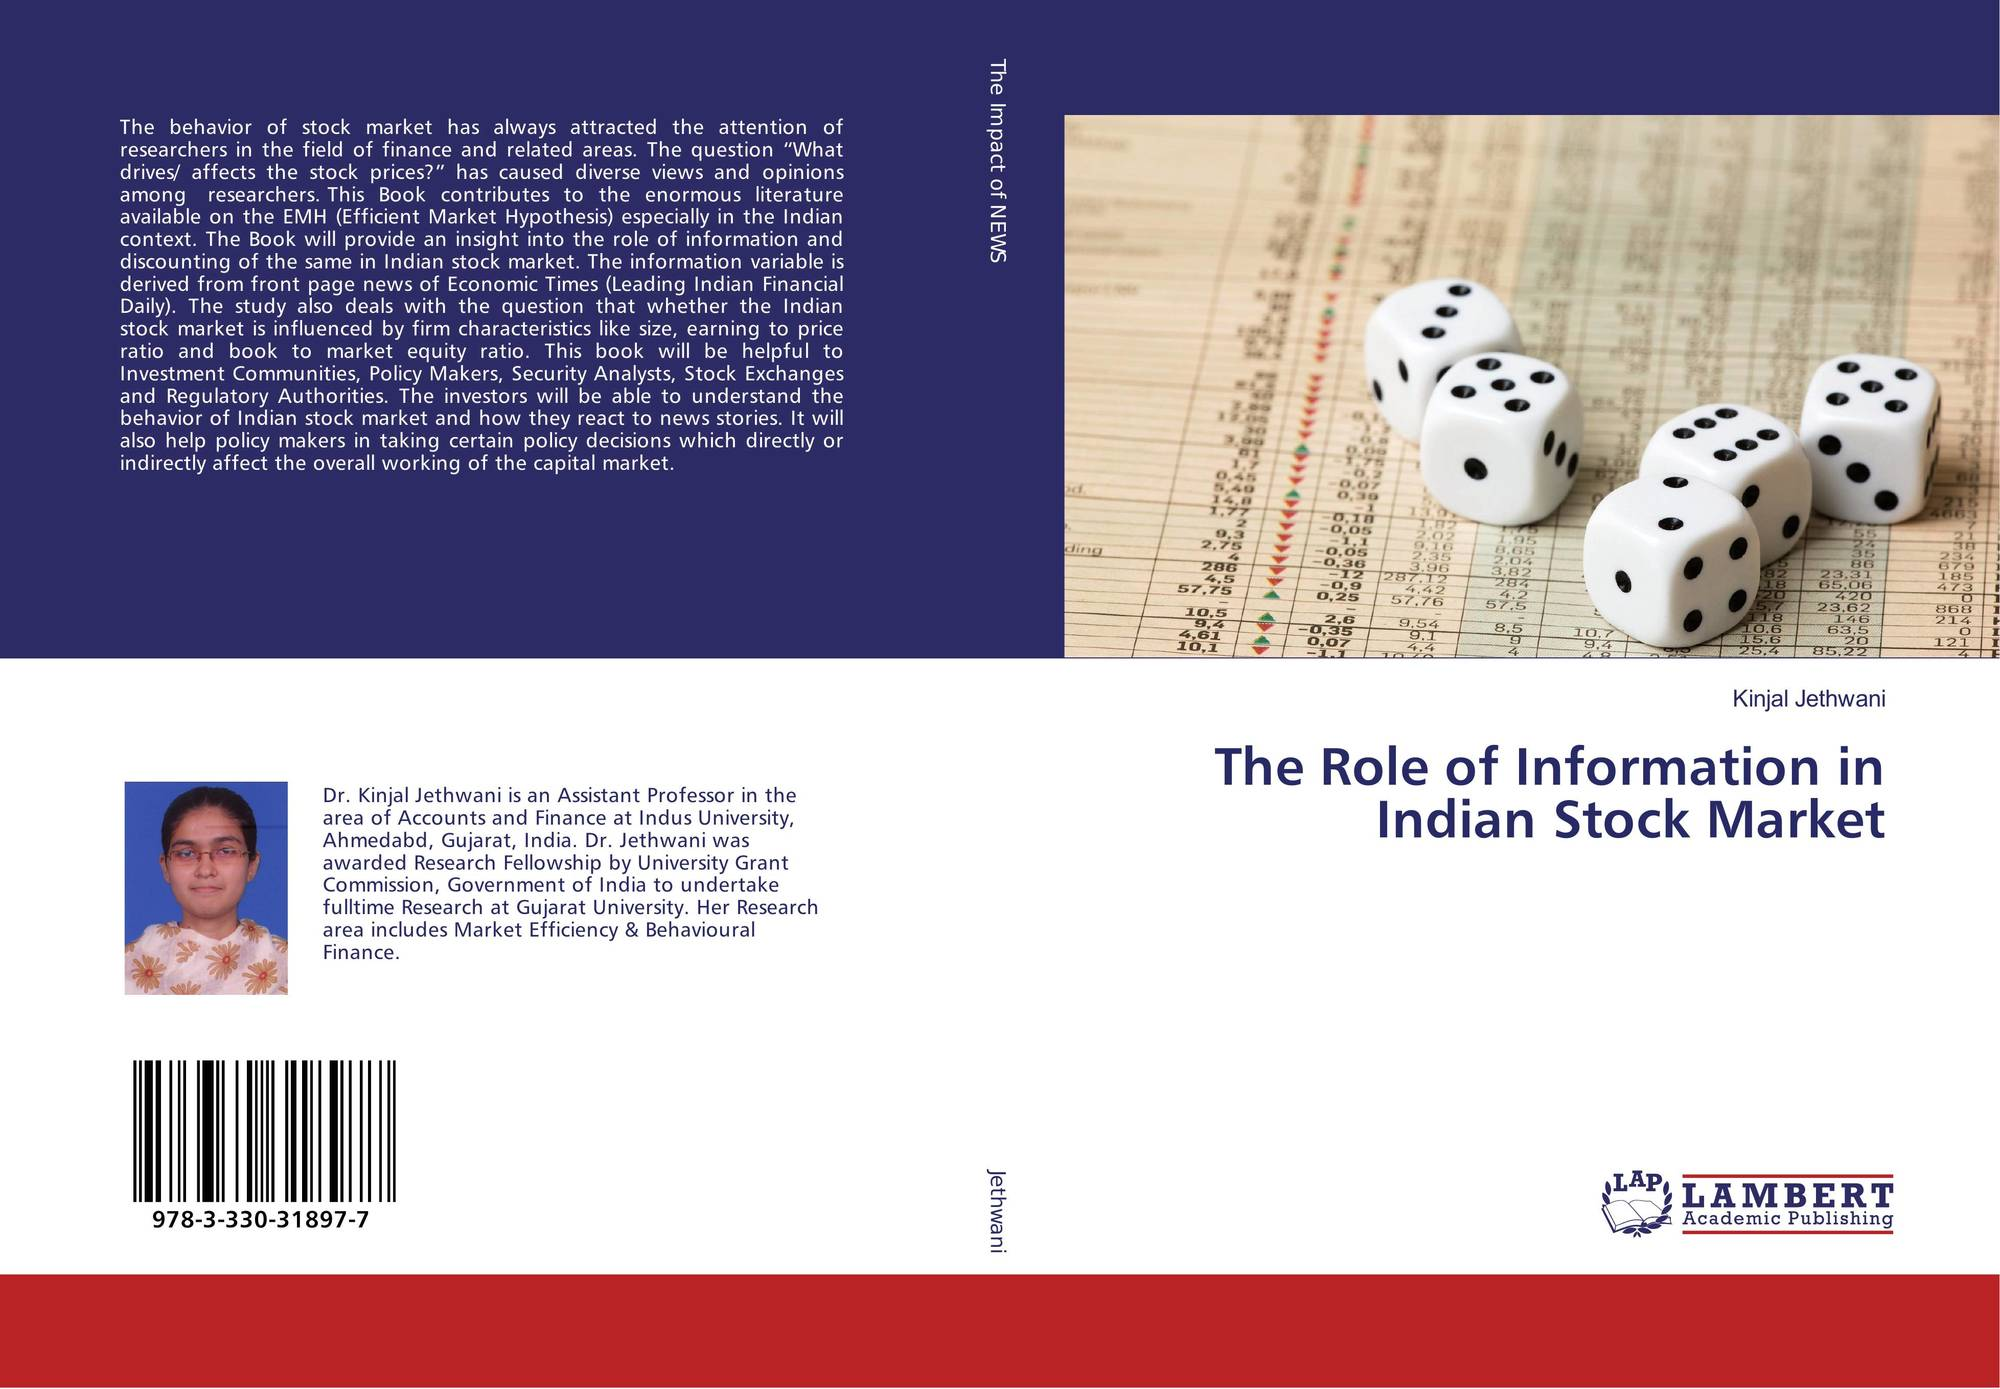 the impact of financial derivatives market on The journal of financial markets publishes high quality original research on applied and theoretical issues related to securities trading and pricing area of coverage includes the analysis and design of trading mechanisms , optimal order placement strategies, the role of information in securities markets.